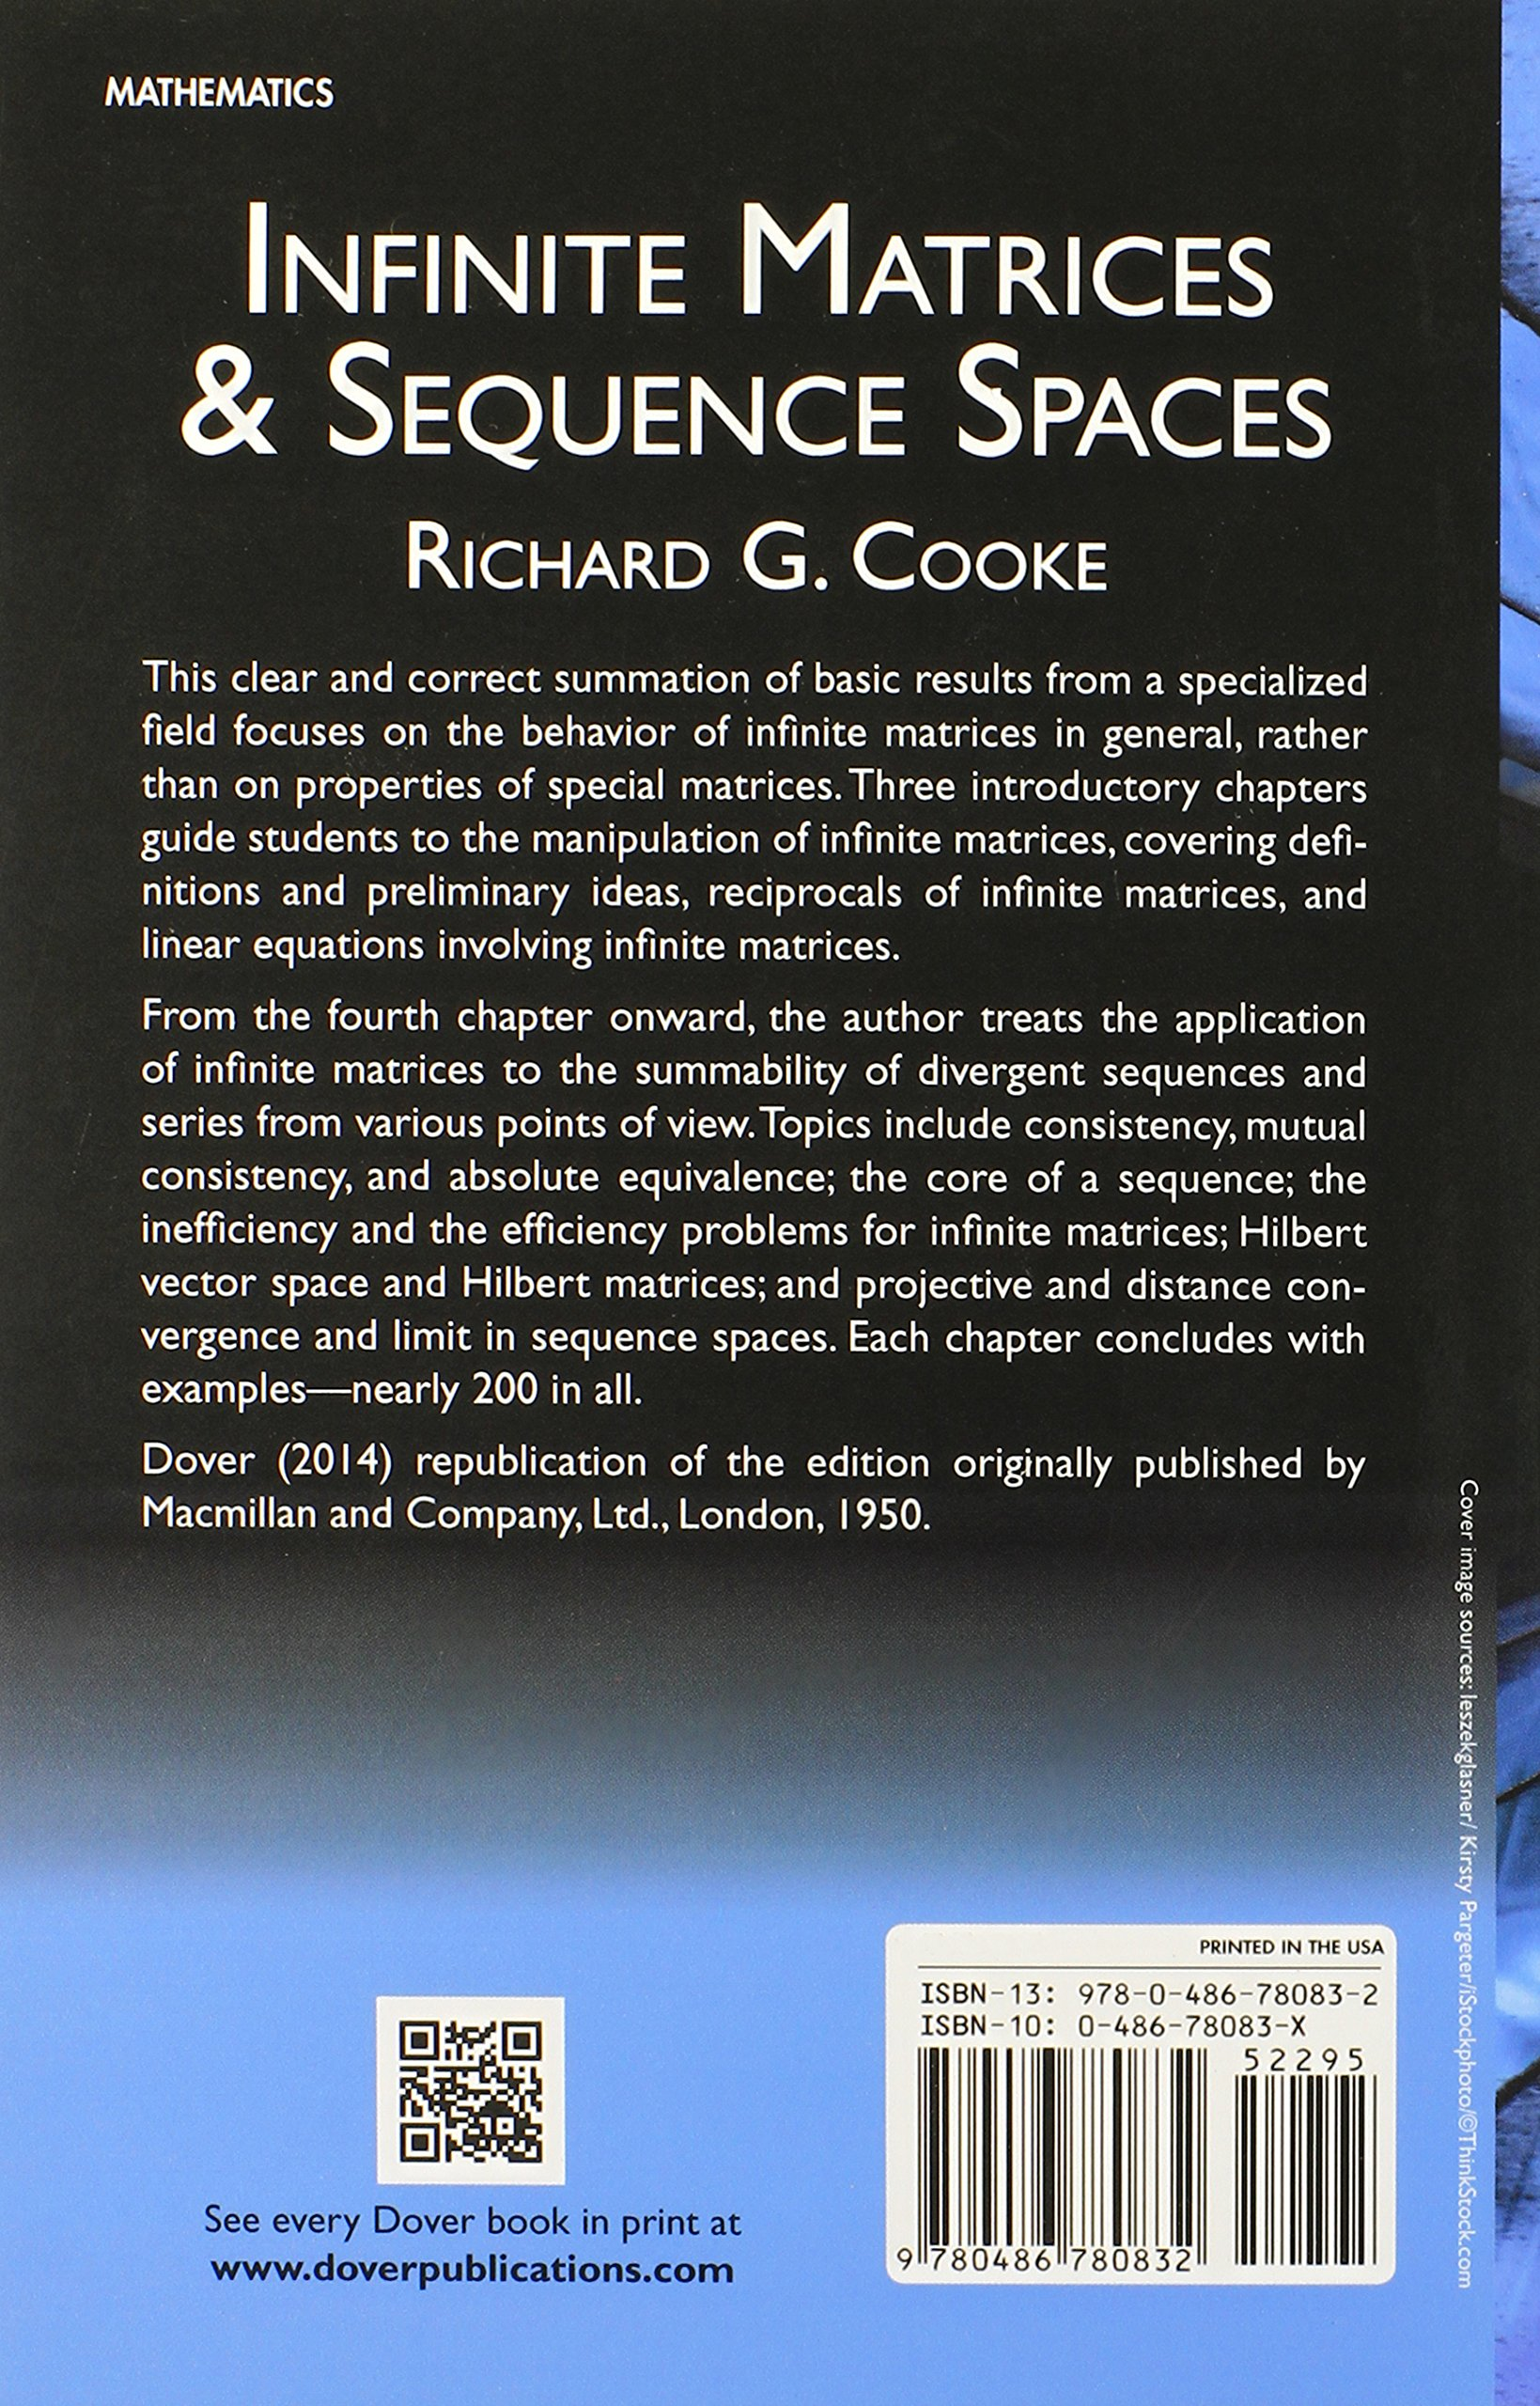 Infinite matrices and sequence spaces dover books on mathematics infinite matrices and sequence spaces dover books on mathematics richard g cooke 9780486780832 amazon books fandeluxe Gallery